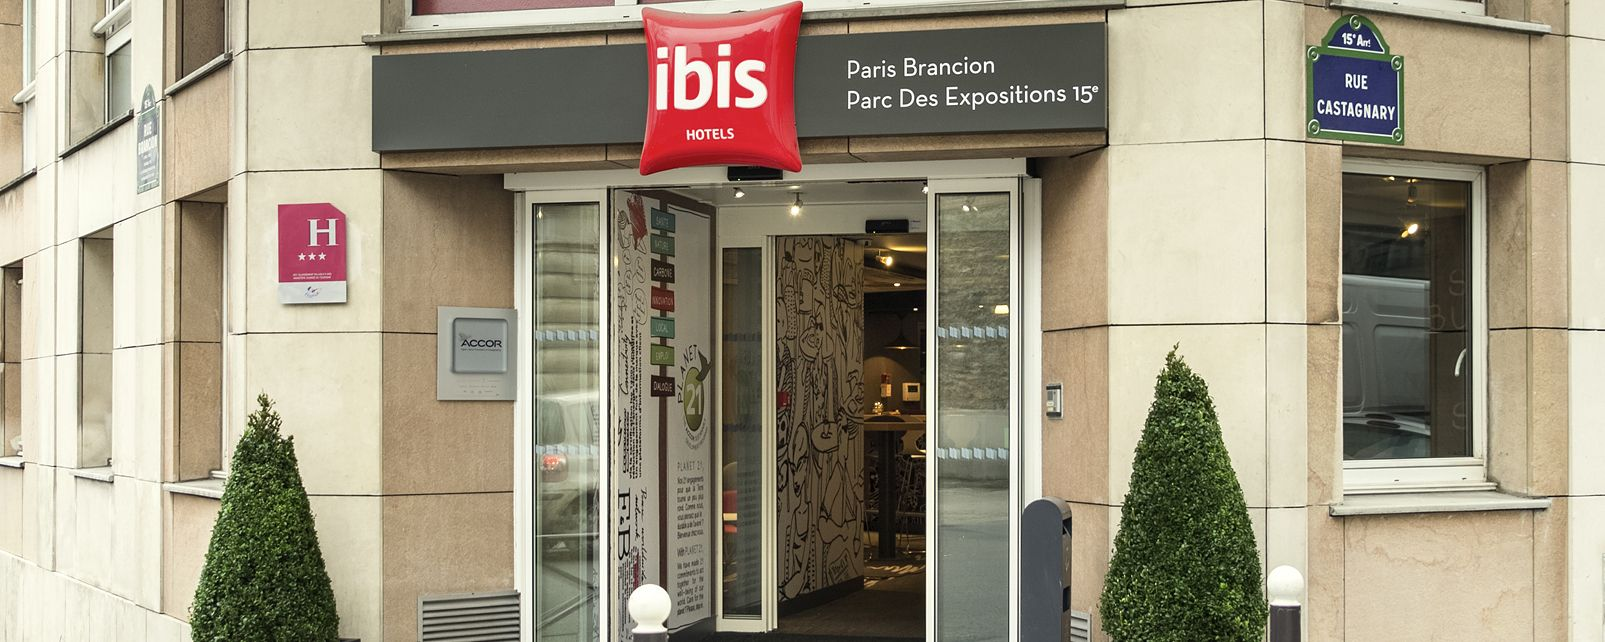 Hotel ibis brancion parc des expositions paris frankreich for Parc des expositions porte de versailles parking